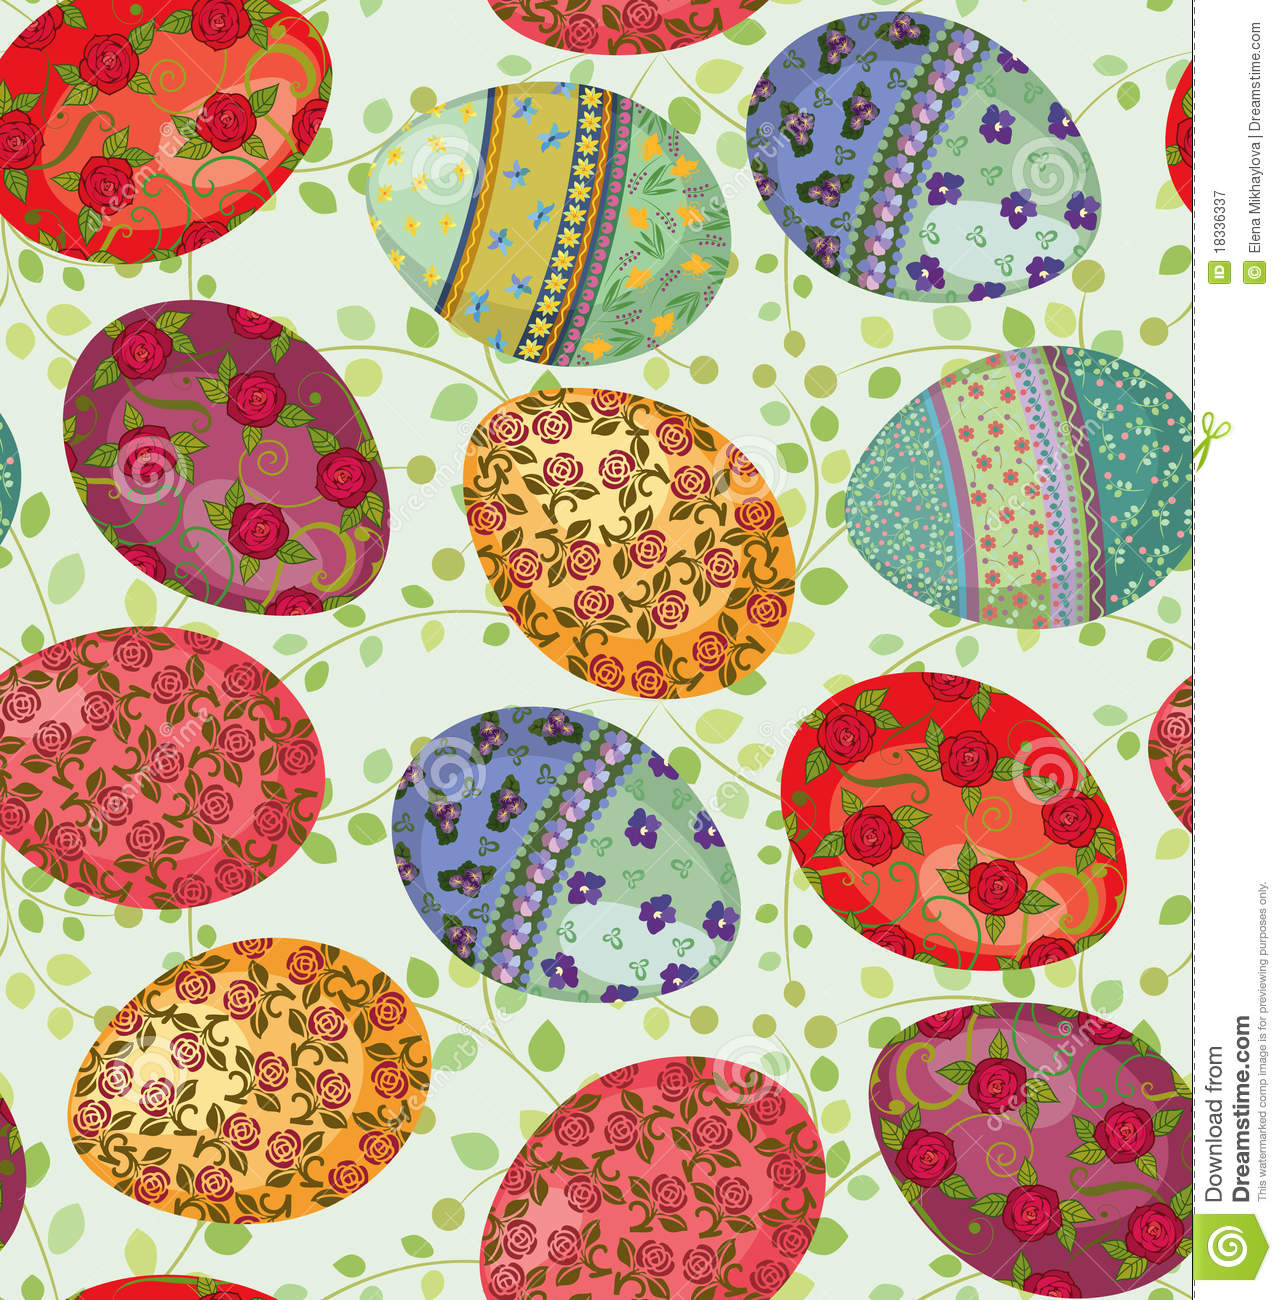 Easter Eggs Patterns Photo Album - The Miracle of Easter